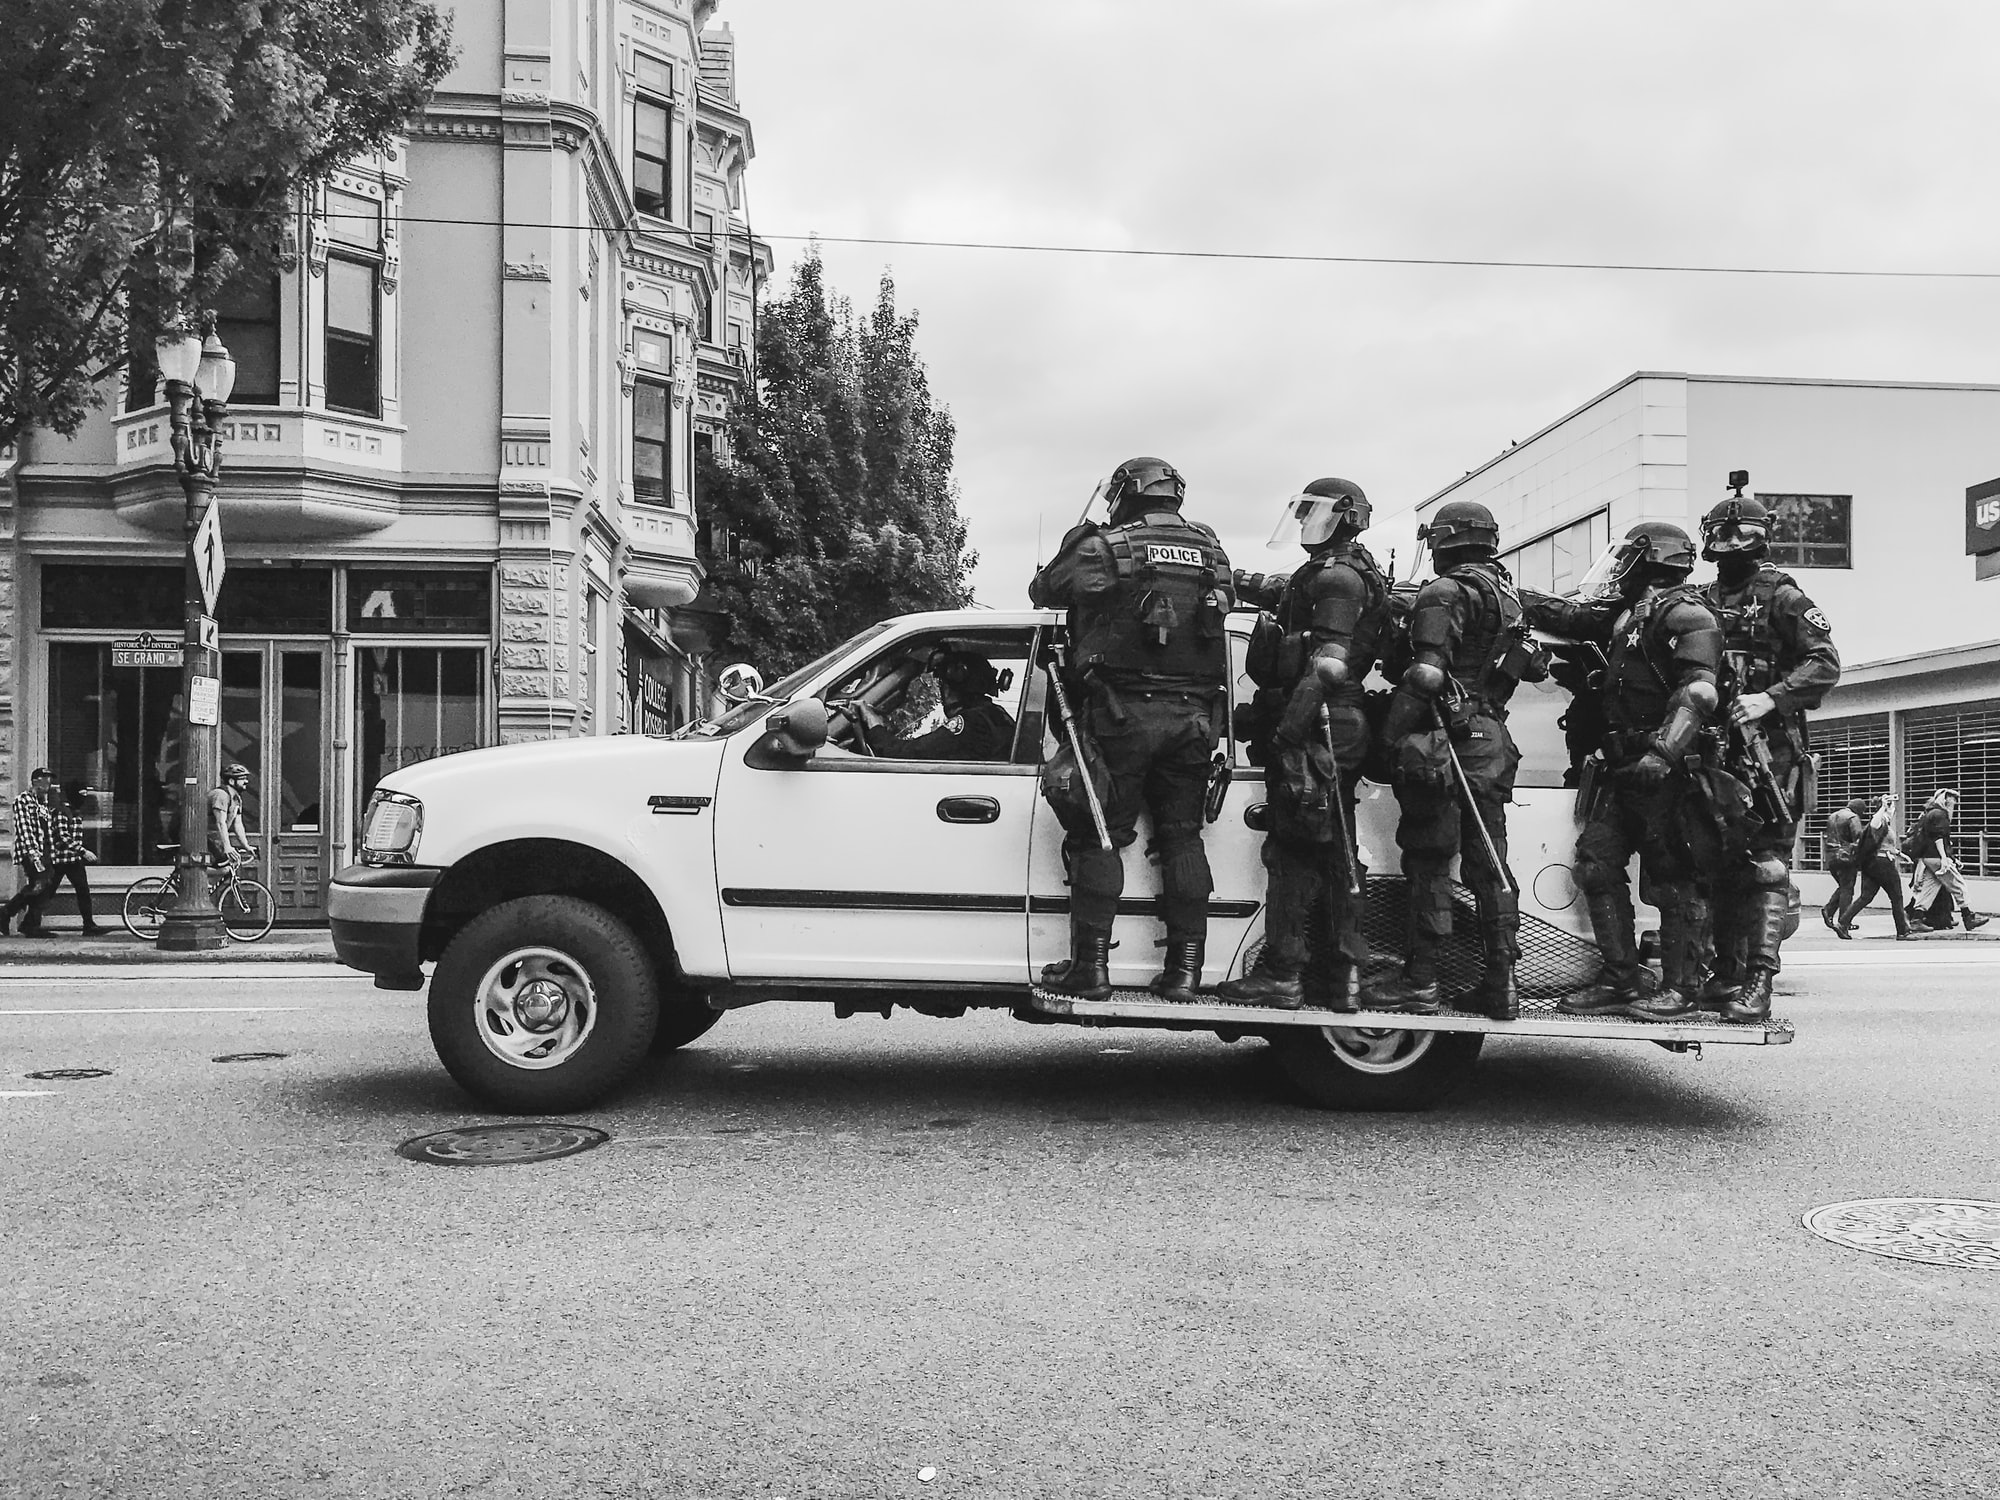 Transparency in Police Militarization: An Analysis of Personal and Public Costs